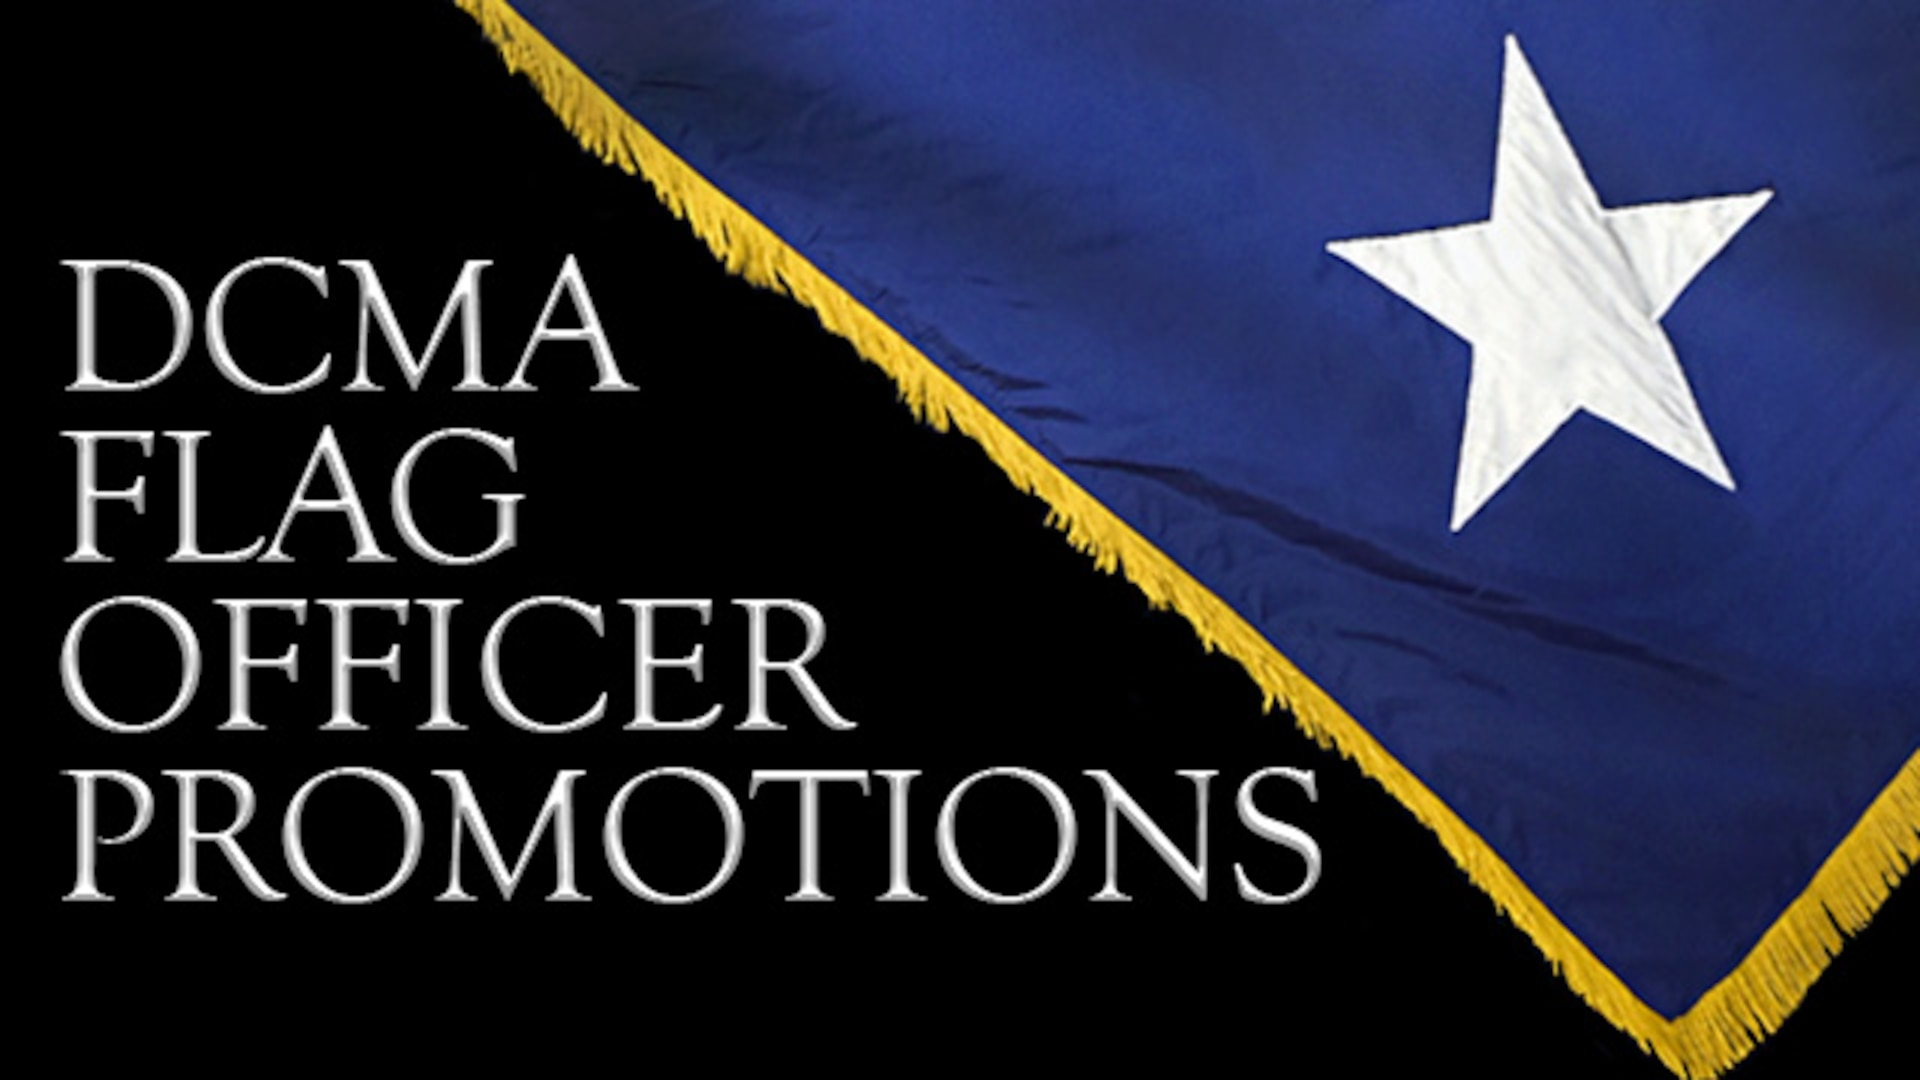 Two DCMA officers were recently selected for promotion to flag positions.